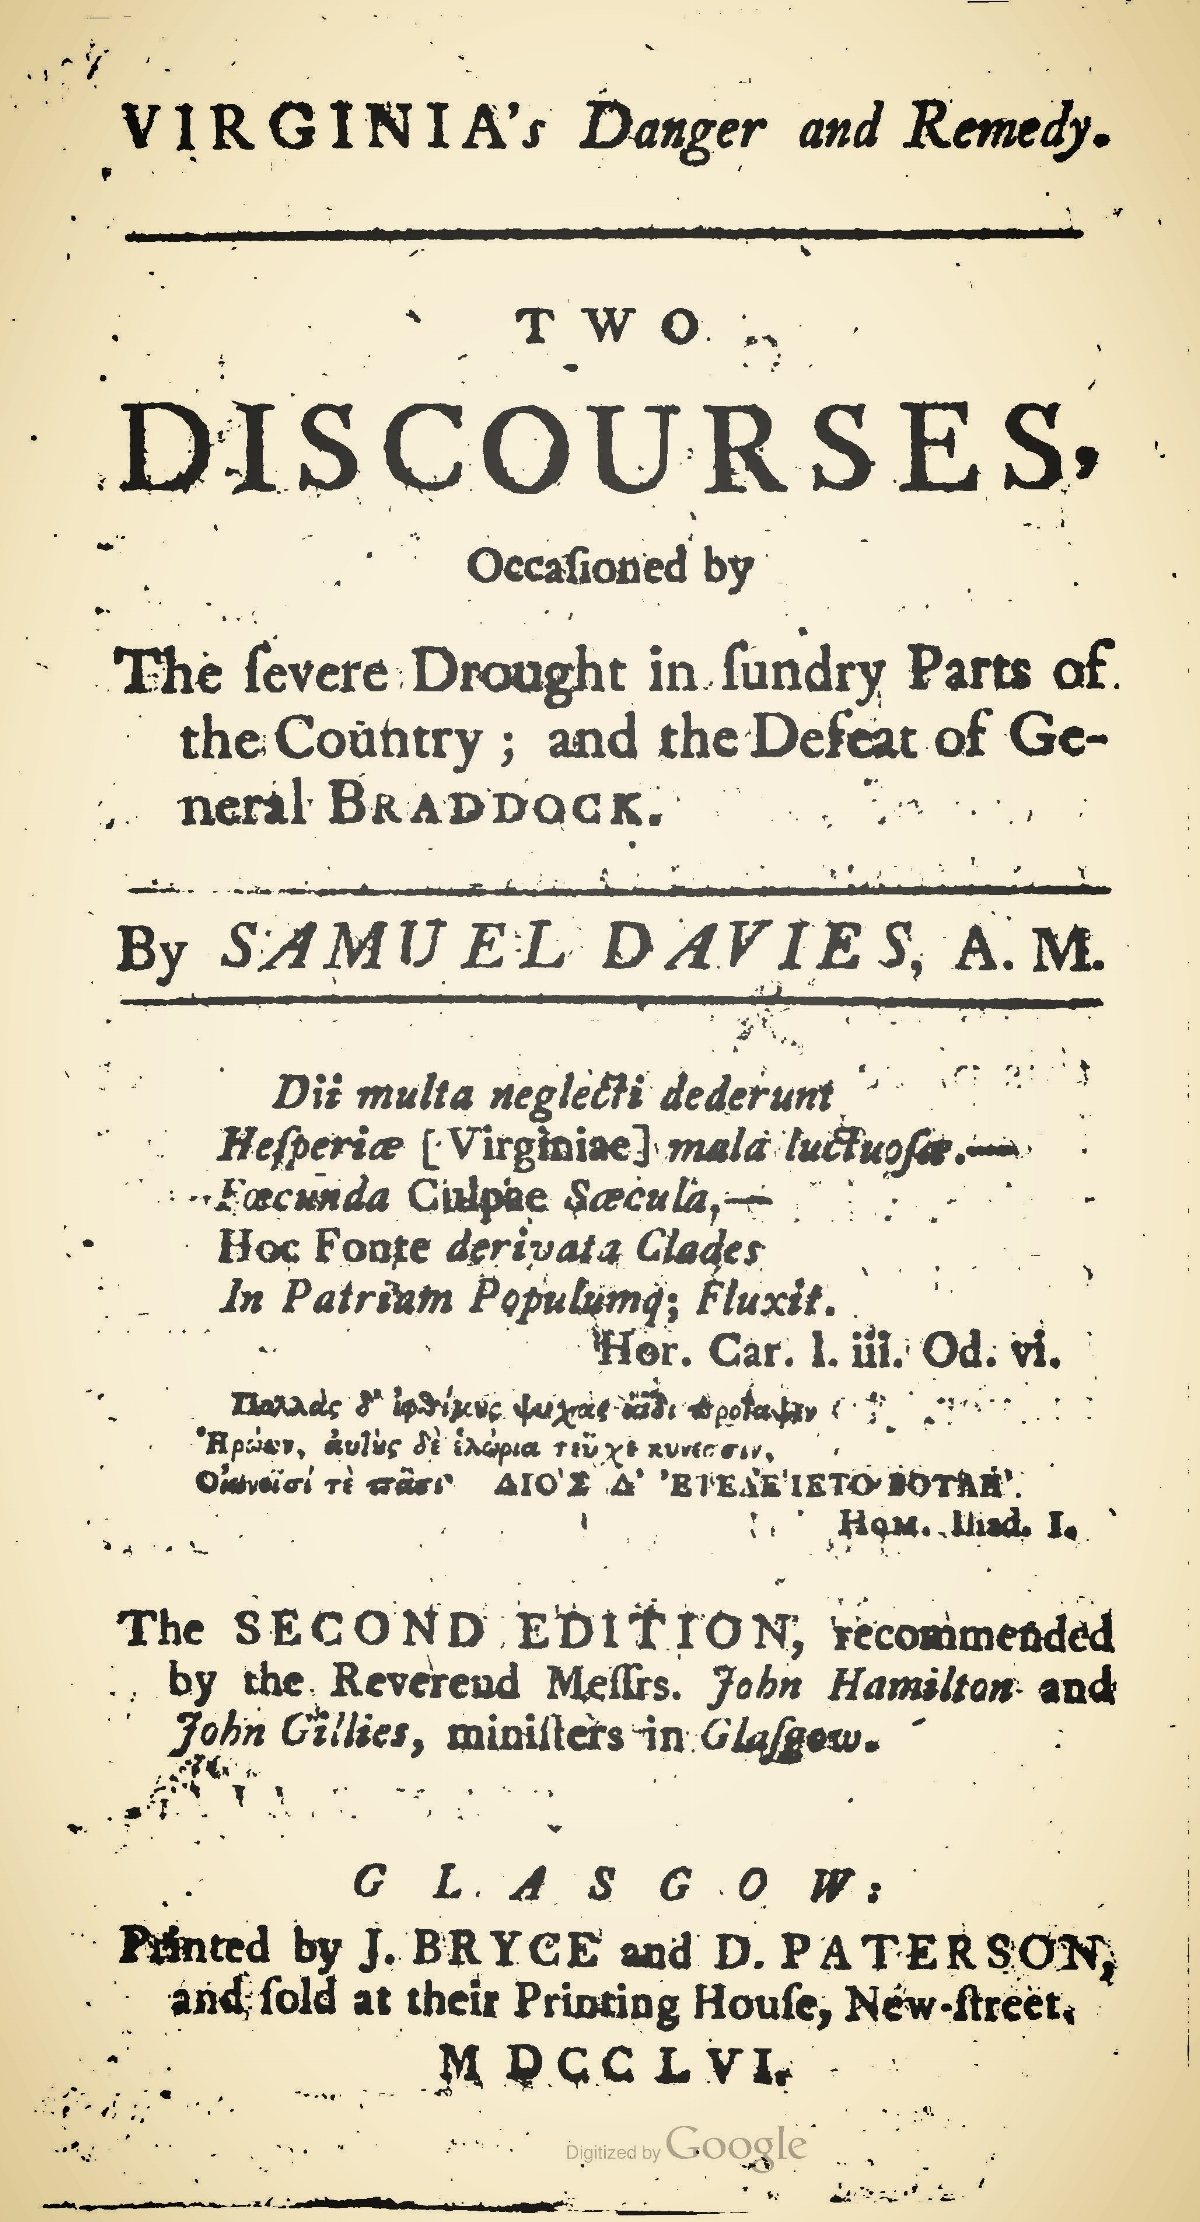 Davies, Samuel, Virginia's Danger and Remedy Title Page.jpg